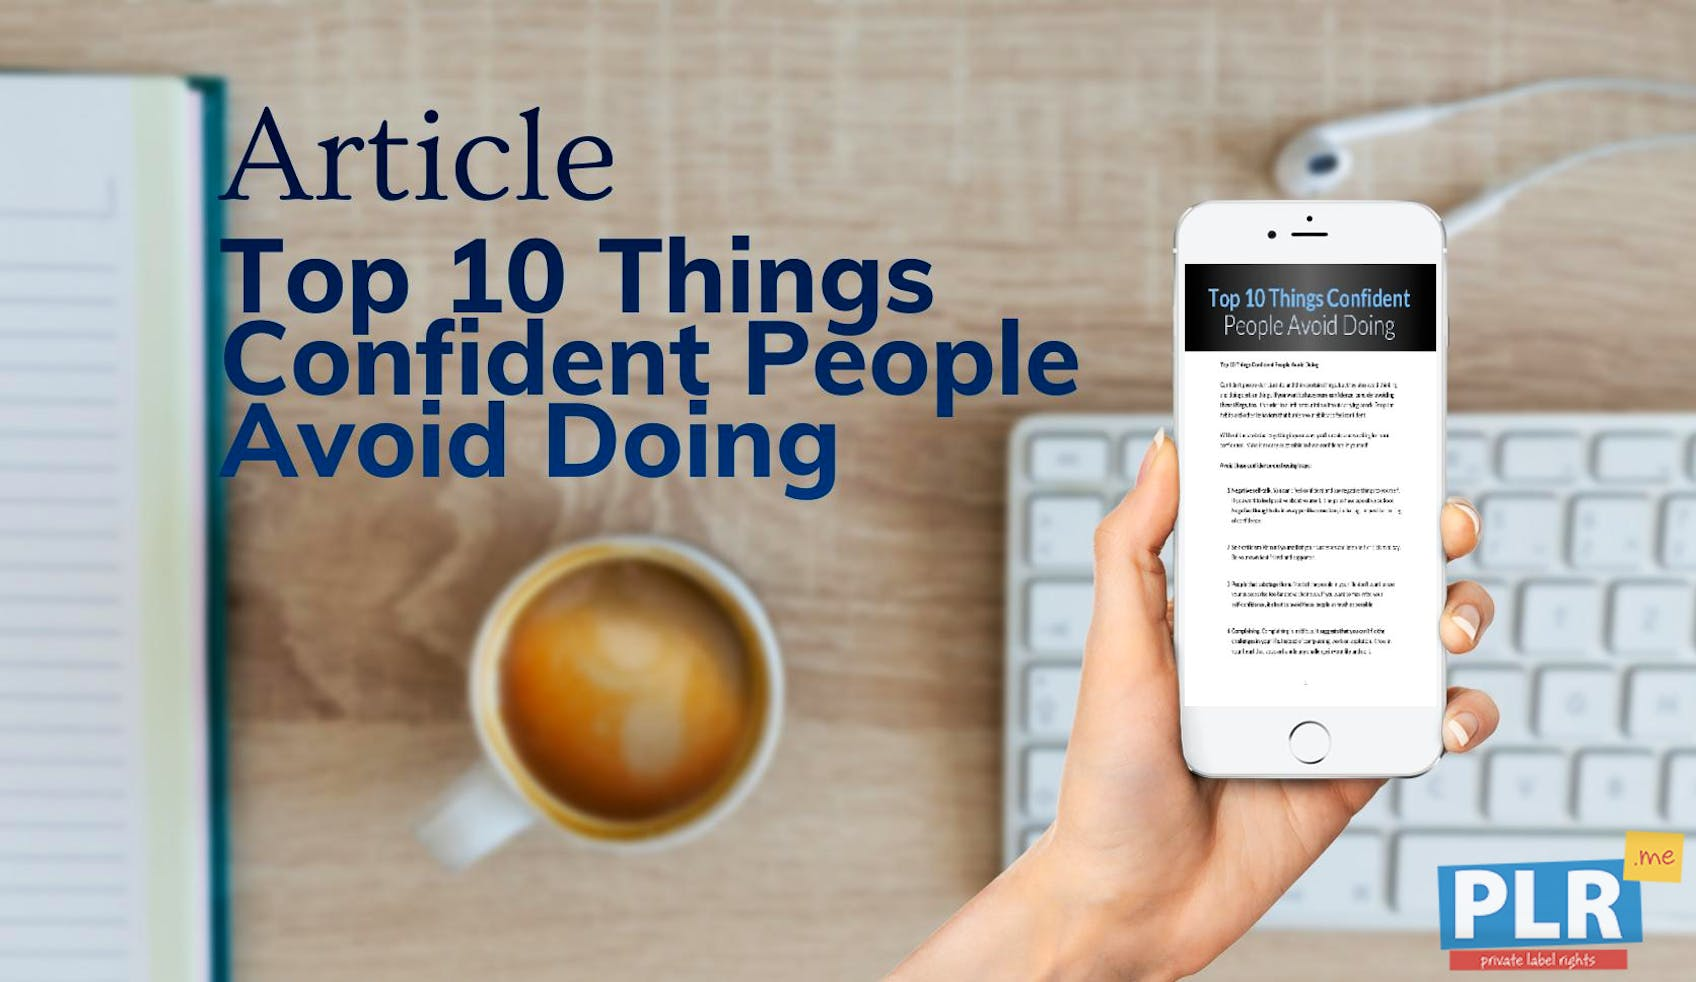 Top 10 Things Confident People Avoid Doing